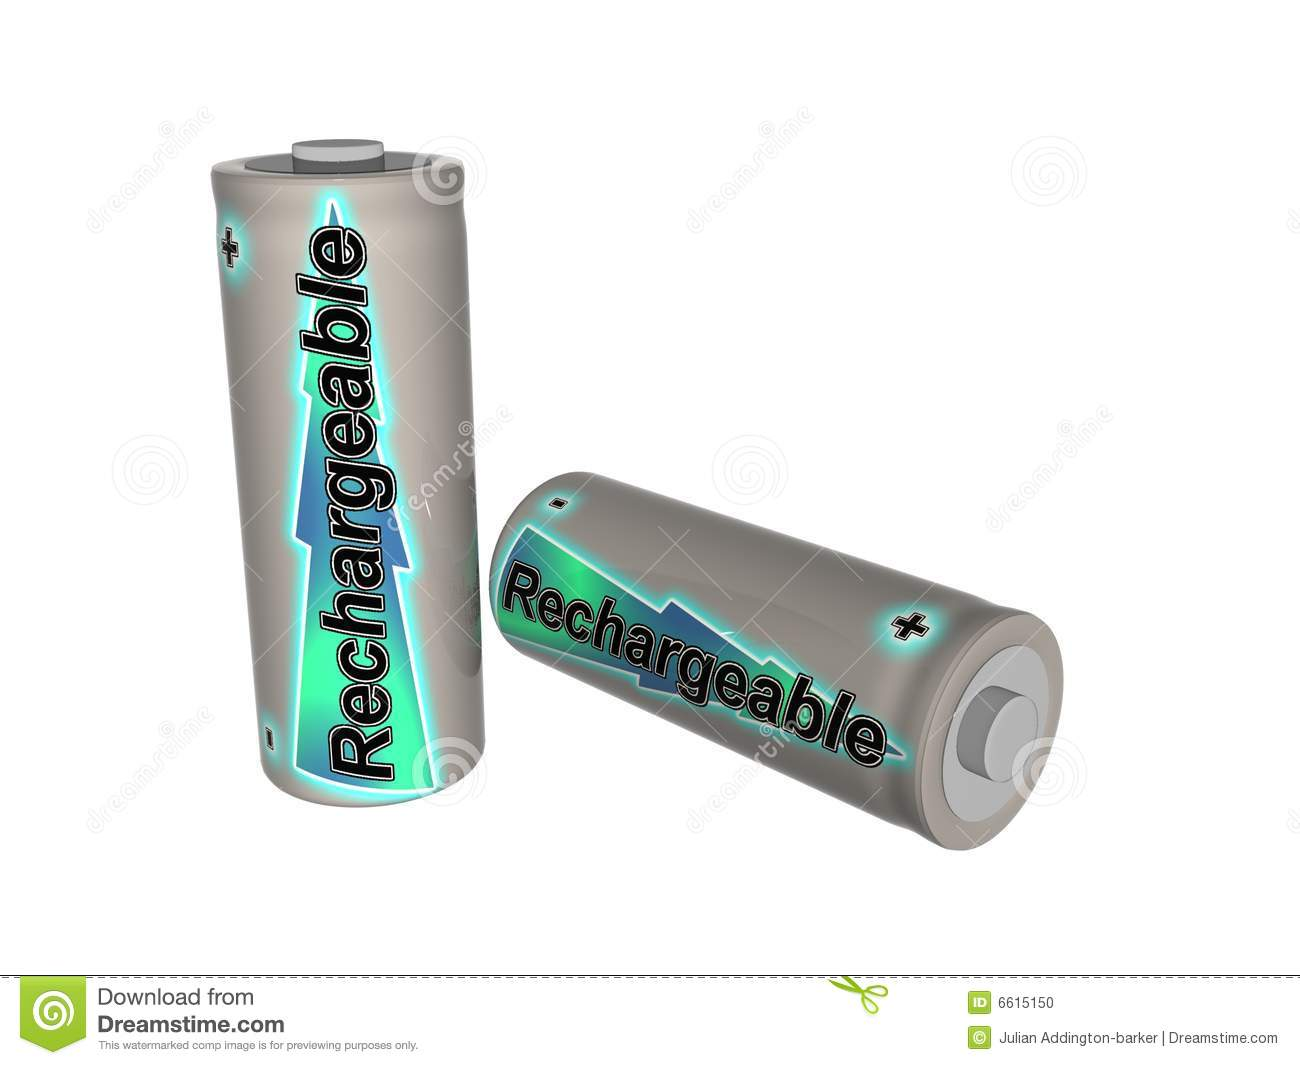 Rechargeable battery clipart - Clipground